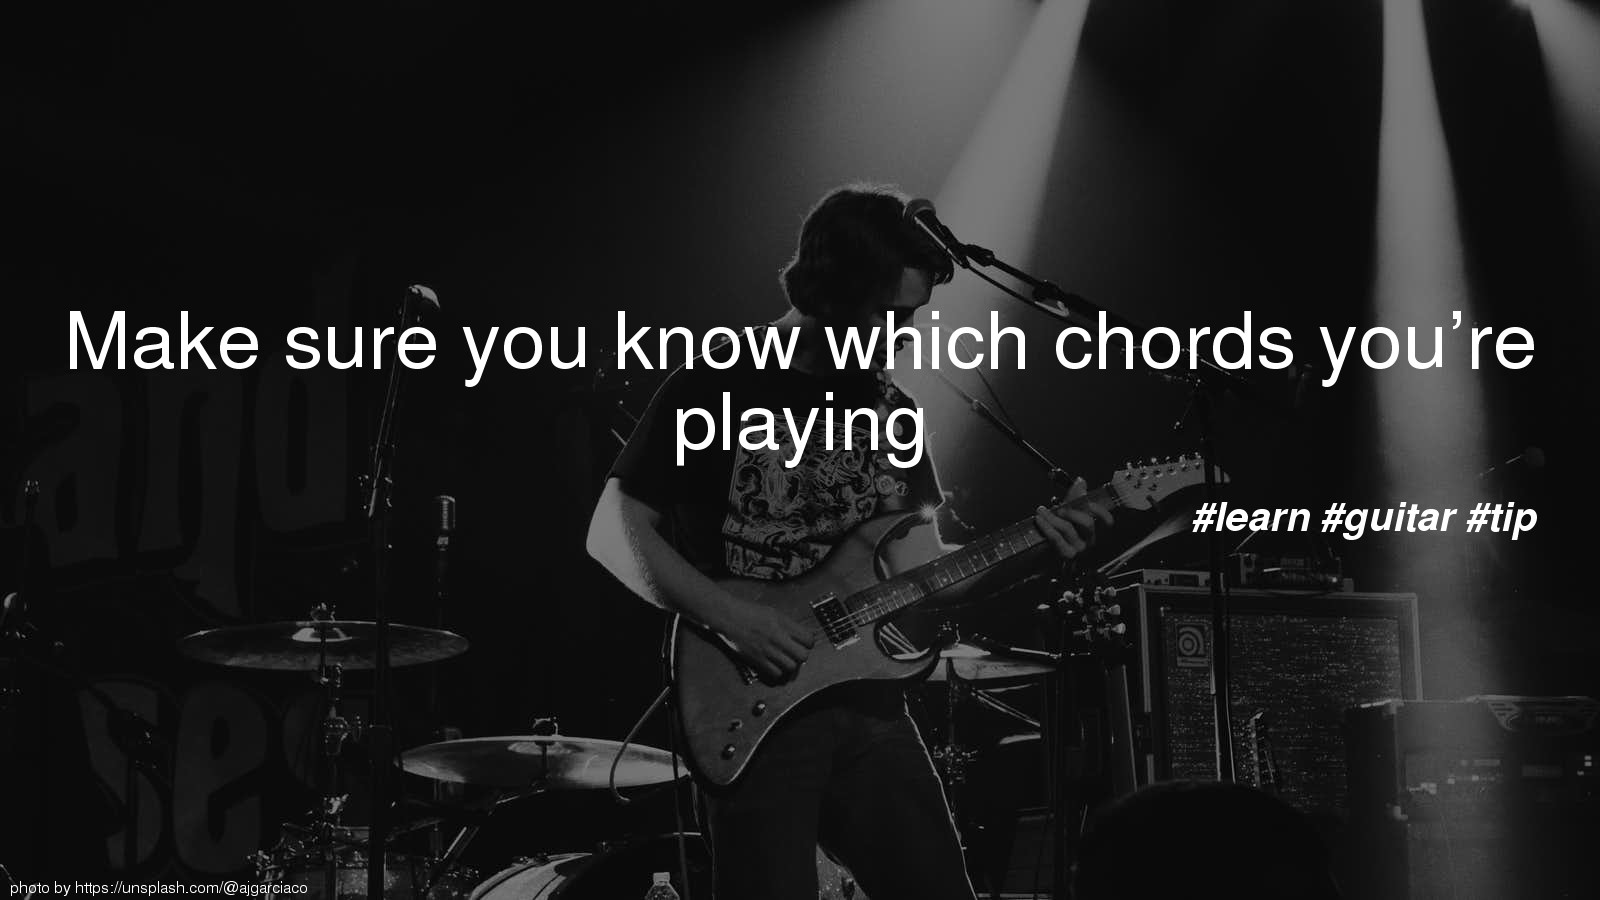 Make sure you know which chords you're playing